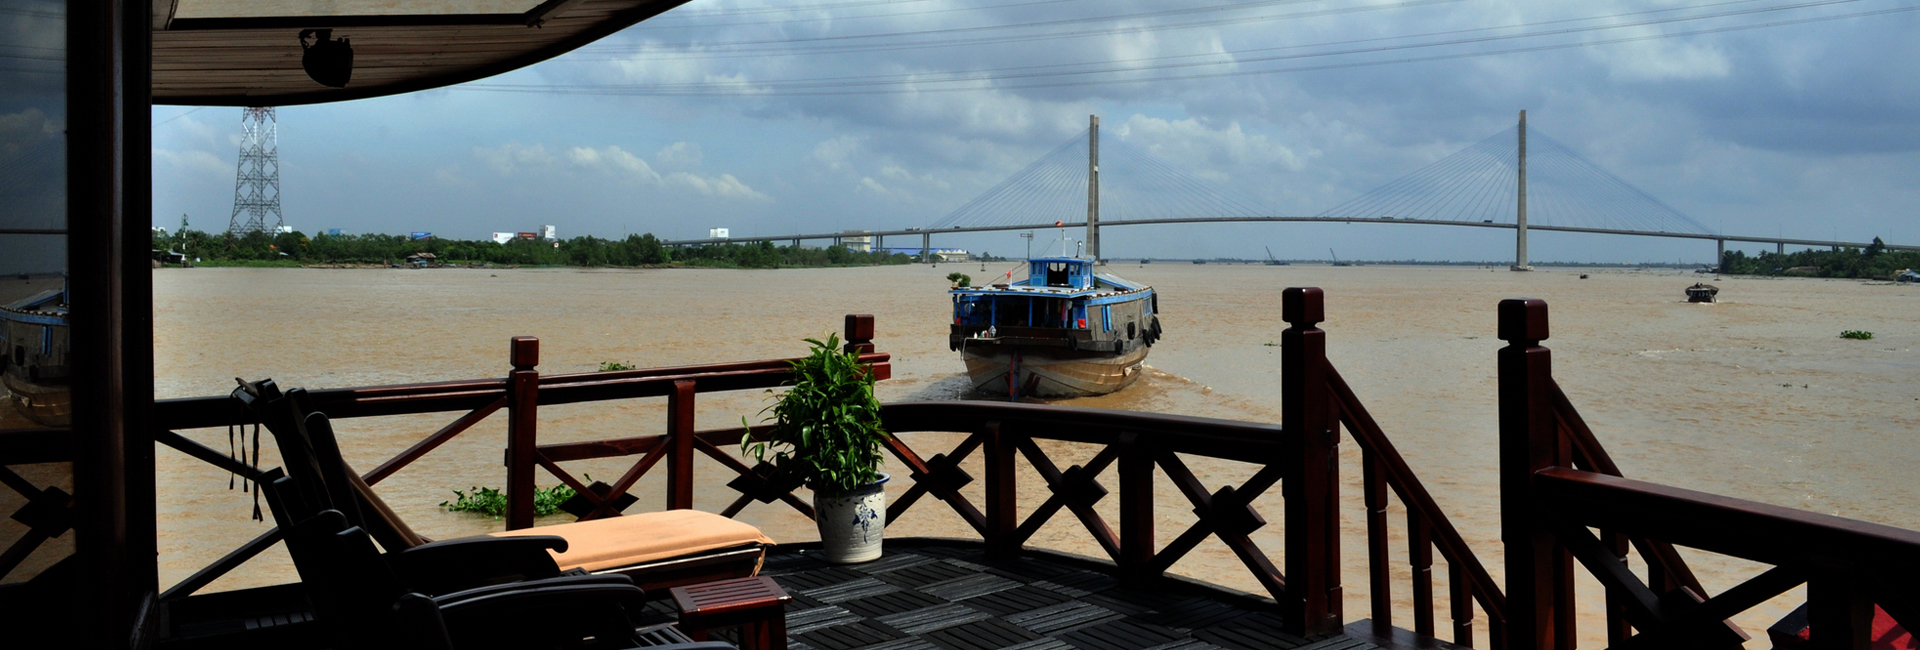 Deluxe Cruises Mekong - Indochina Voyages